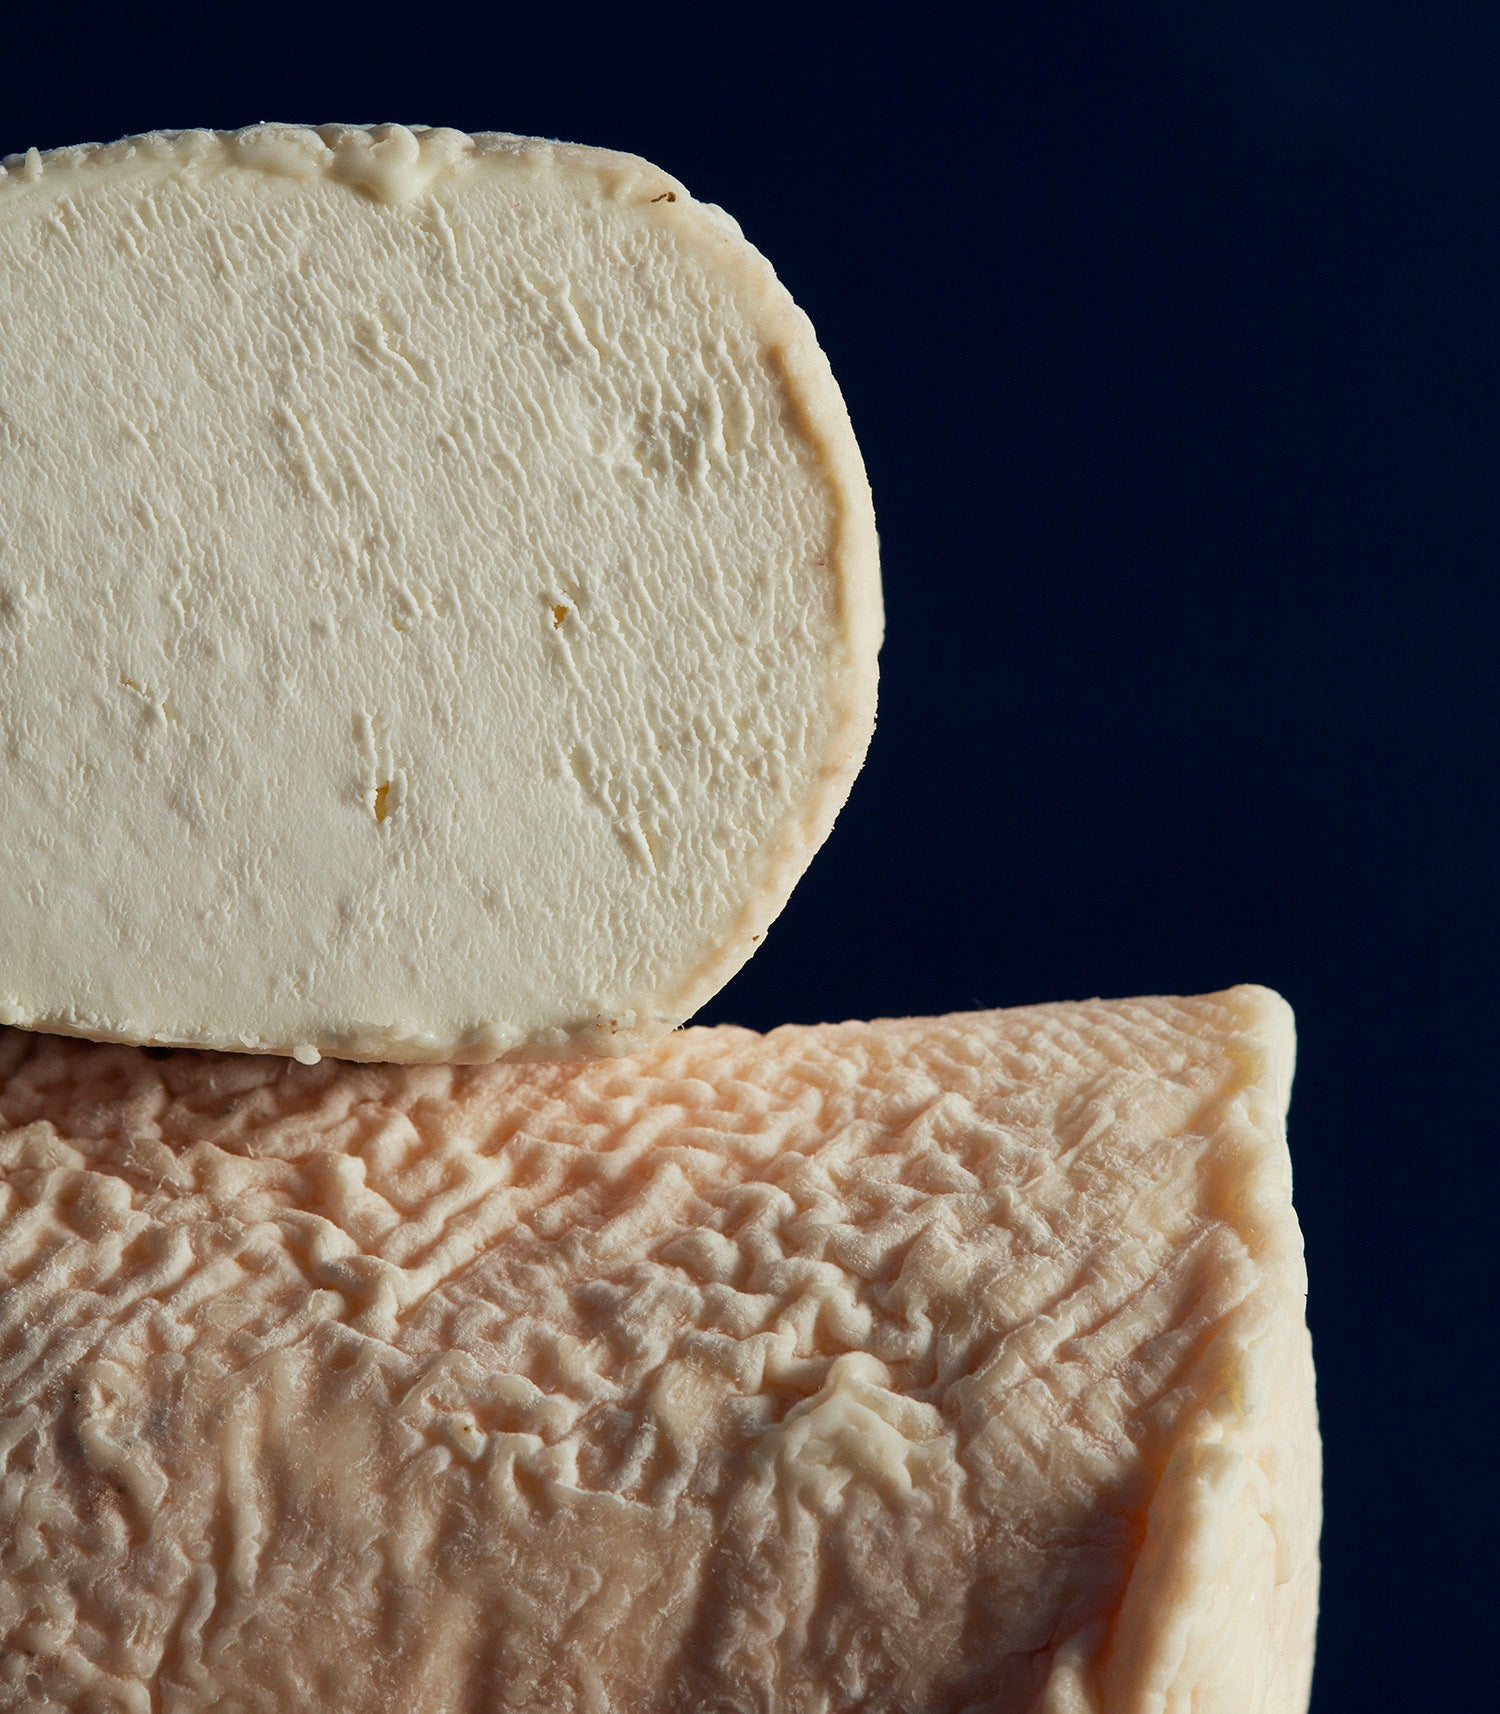 Close up of a cross-section of St Tola goat's cheese, showing the delicate, mould-flecked, pinky-coloured, wrinkly rind and dense, creamy paste